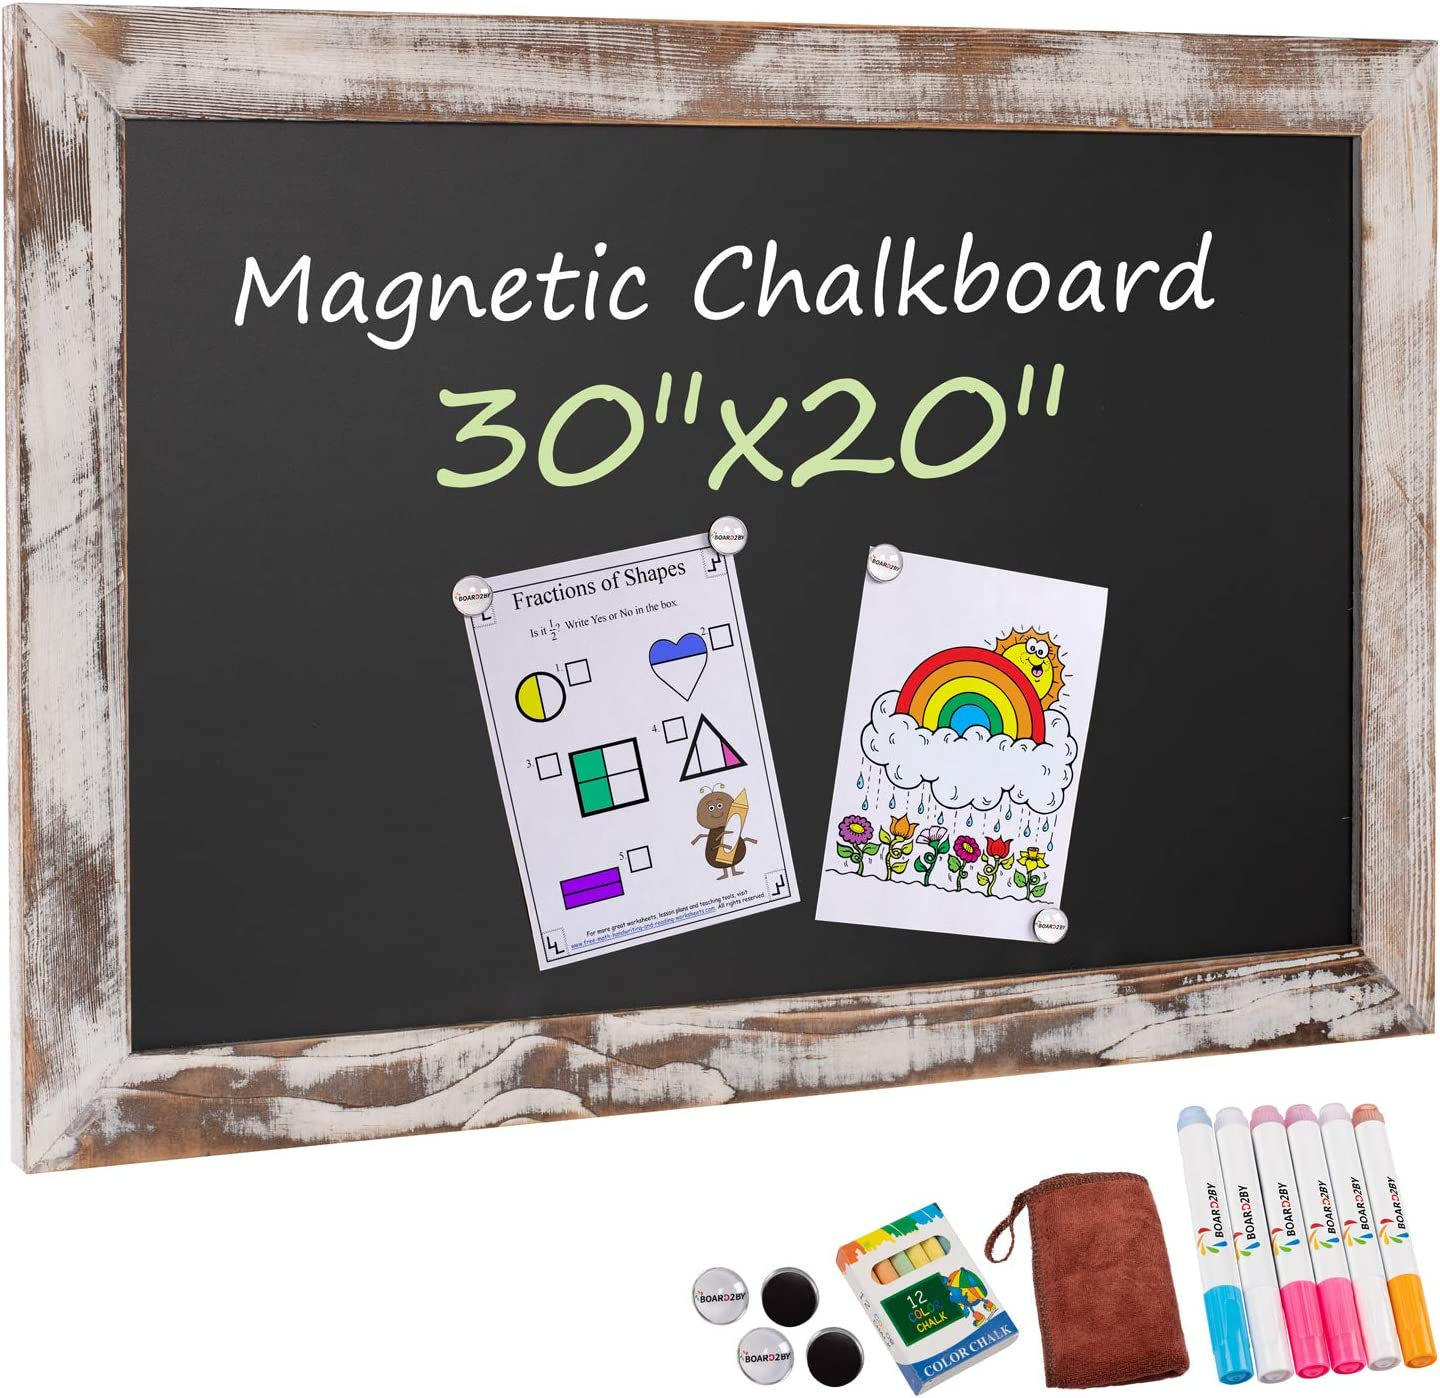 Board2by Rustic Wood Framed Magnetic Chalkboard 20 x 30, Large Hanging Chalk Board Sign for Kids, Non-Porous Wall Blackboard for Wedding Kitchen Restaurant Menu and Home with 4 Unique Magnets, White